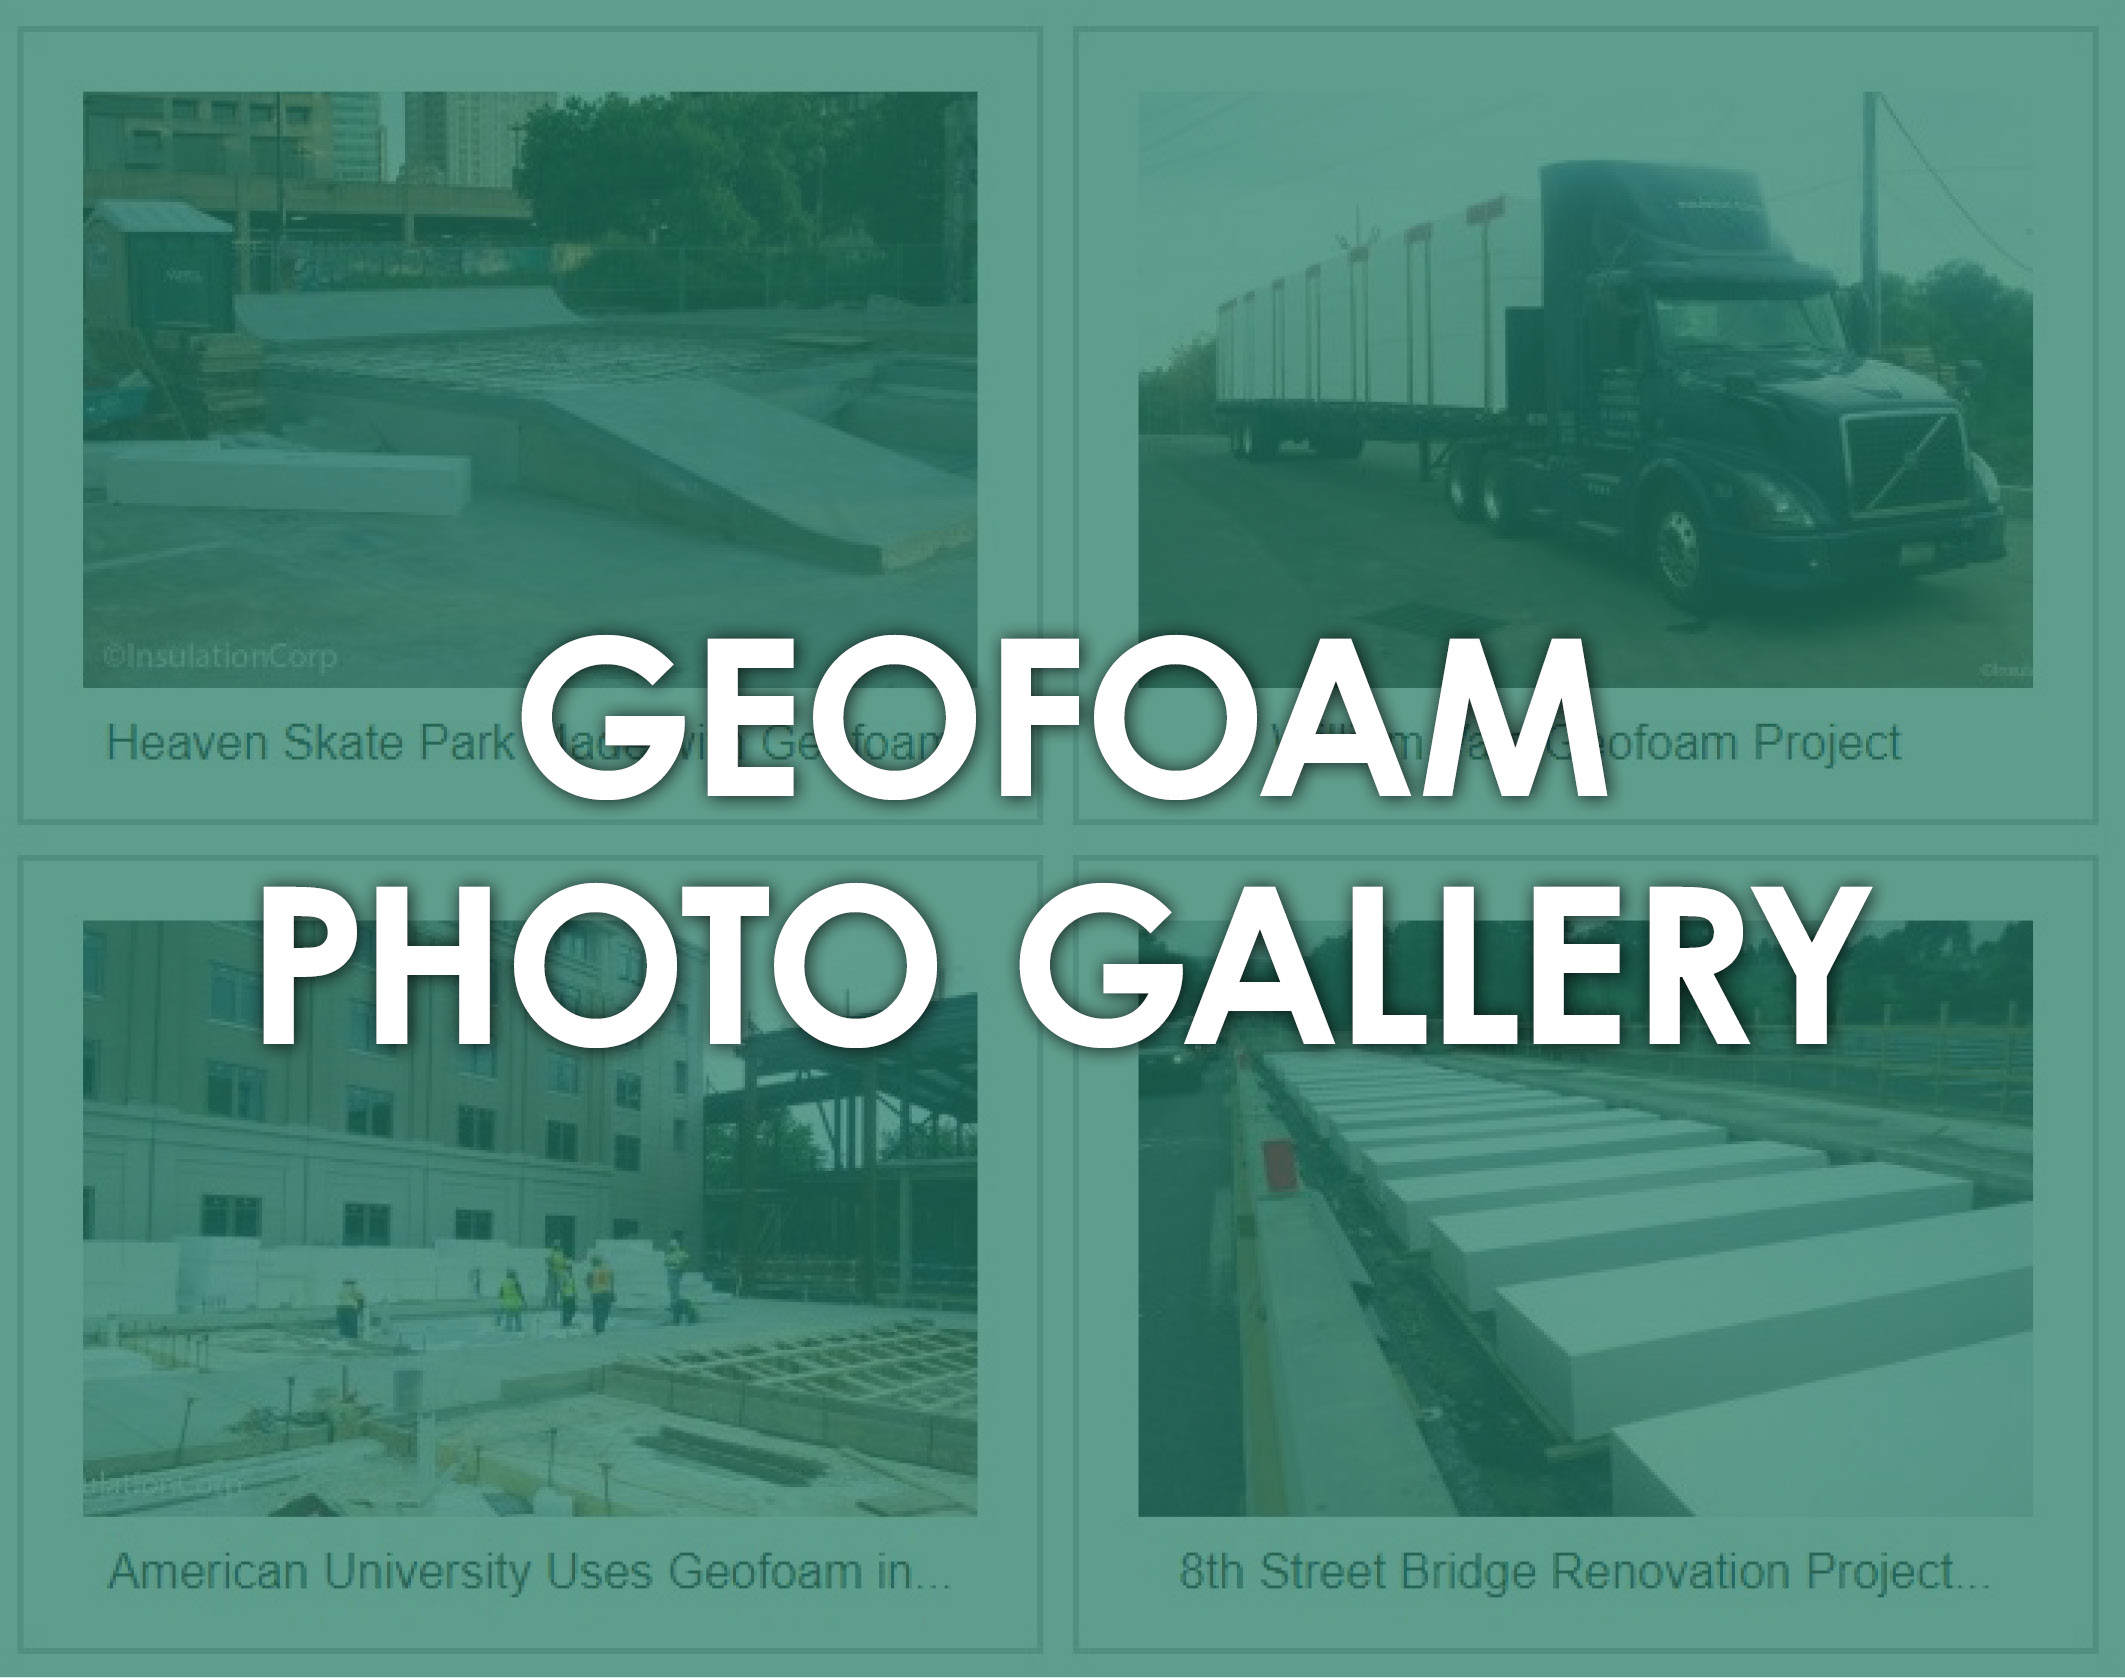 Geofoam Photo Gallery by ICA